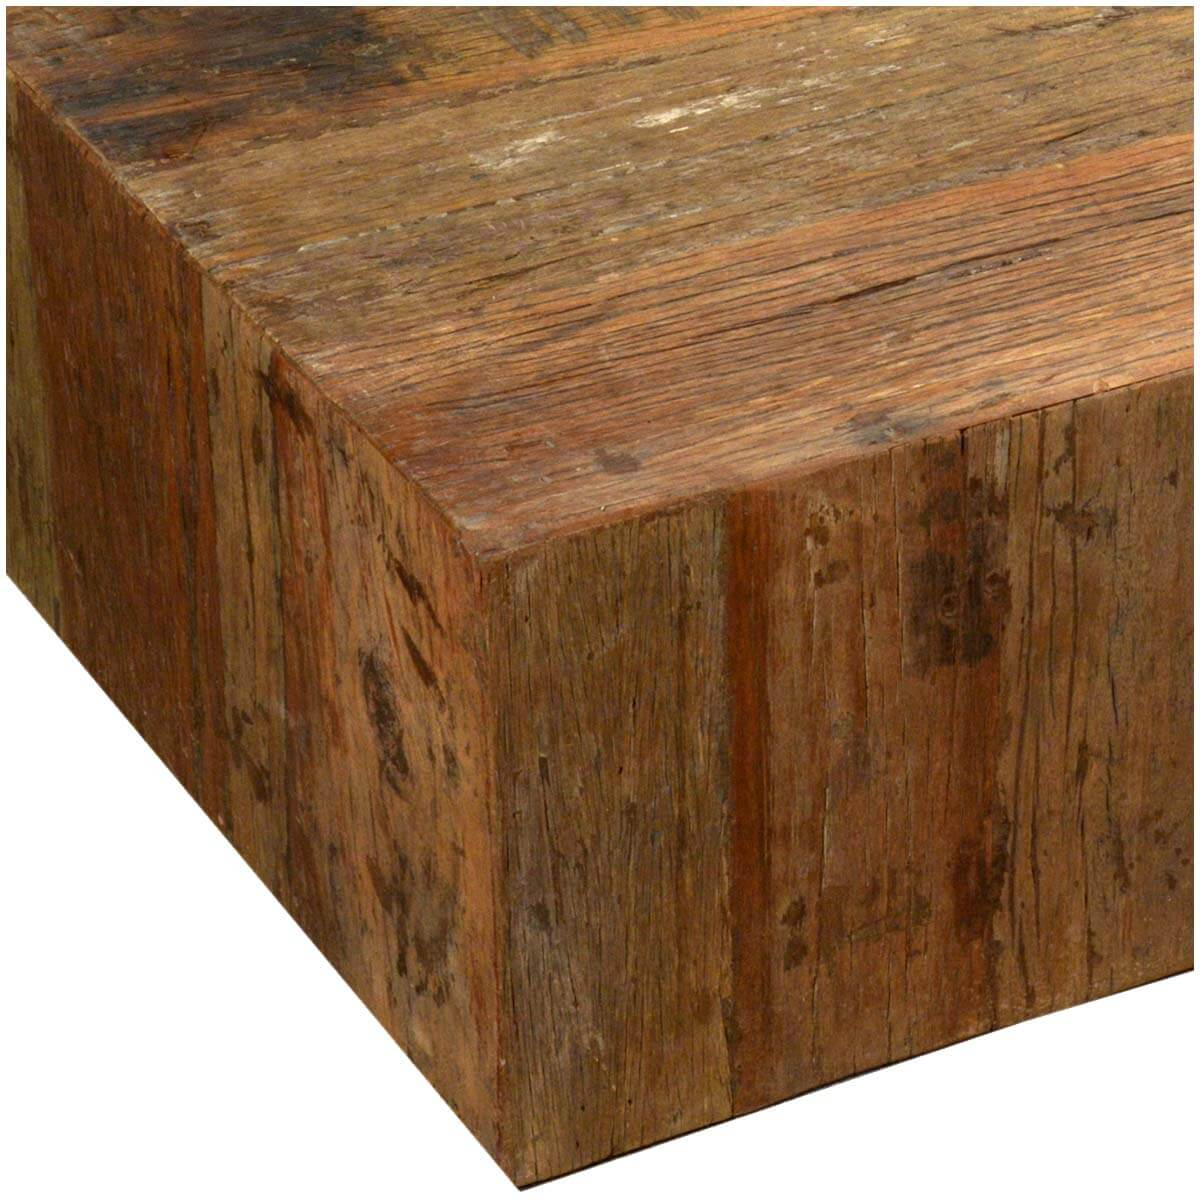 Unique rustic railroad reclaimed wood square coffee table for Buy reclaimed wood online